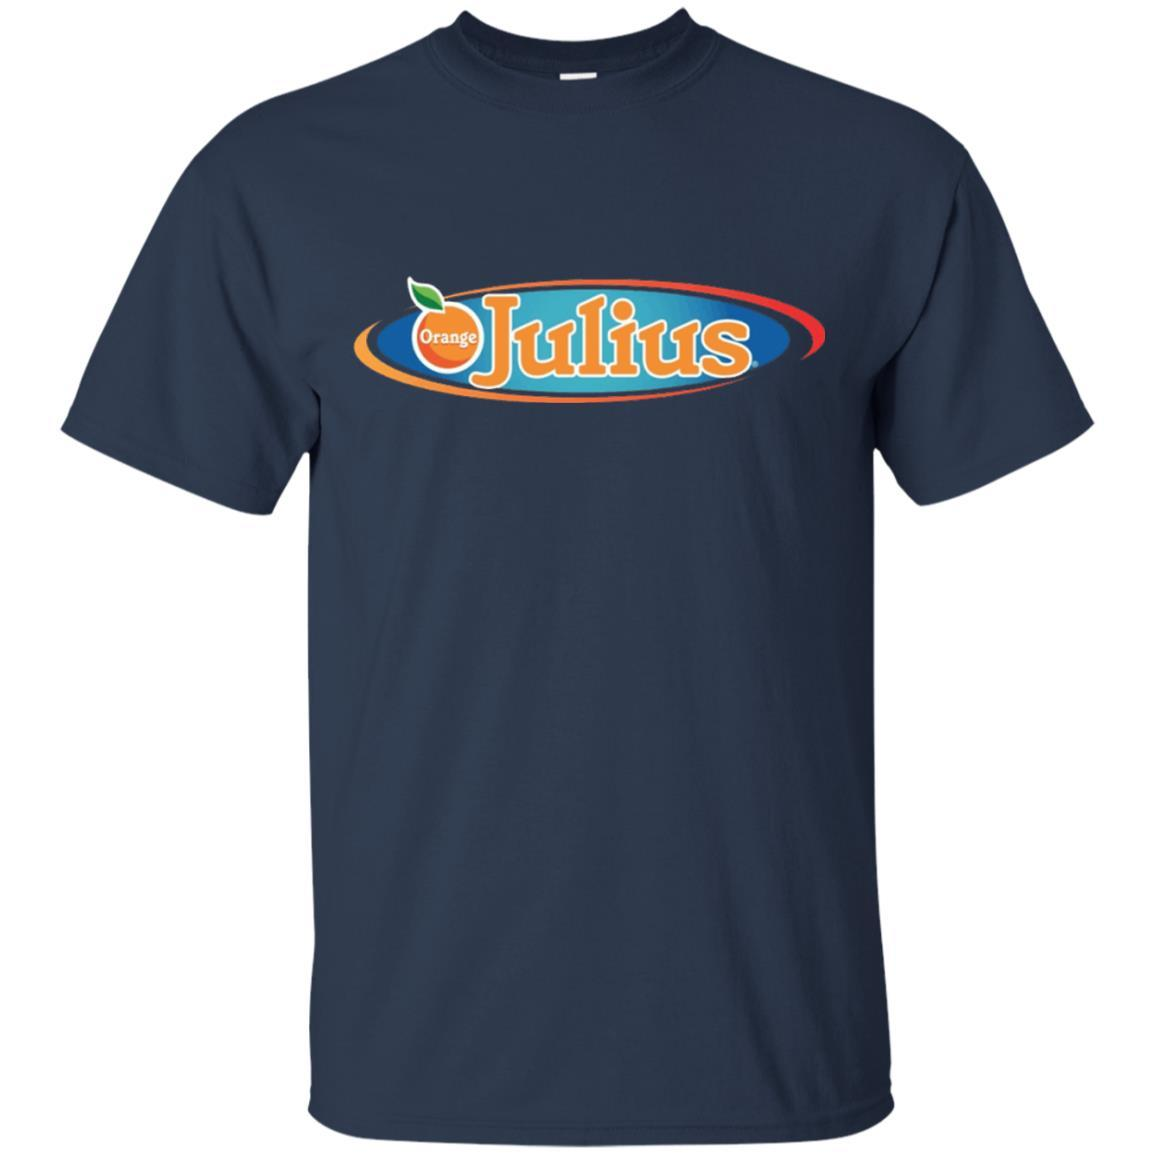 Orange Julius Vintage Logo Tee Shirt